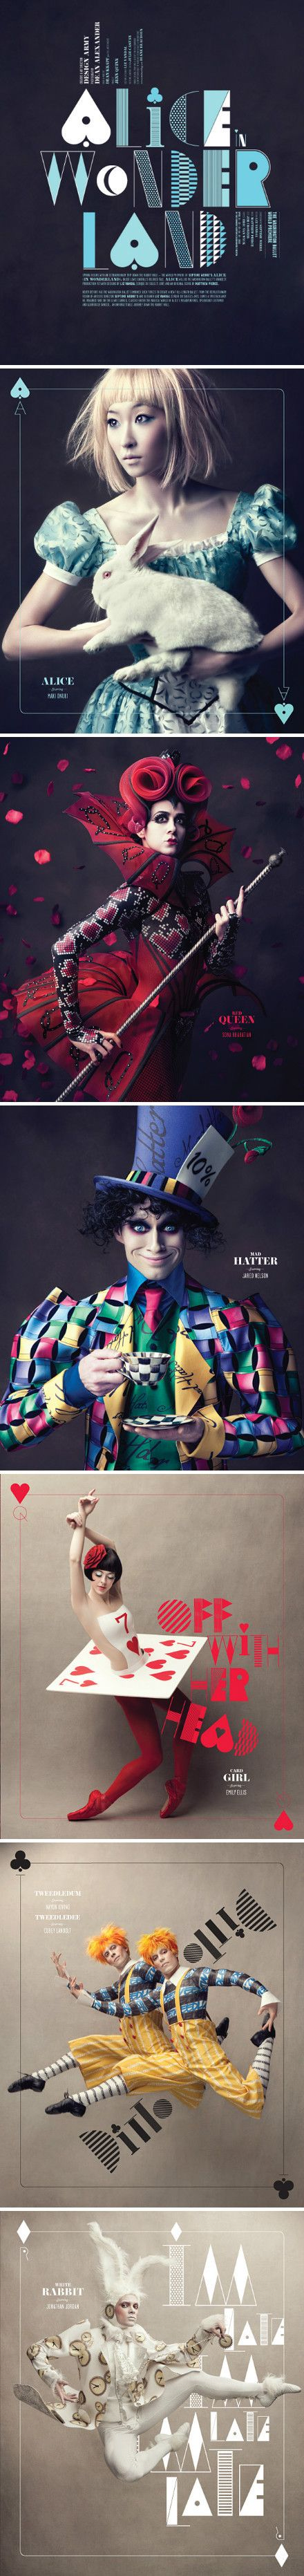 Alice in Wonderland,  Washington Ballet. Creative & Art Direction by Jake Lefebure and Pum Lefebure of Design Army. Photography by Dean Alexander.